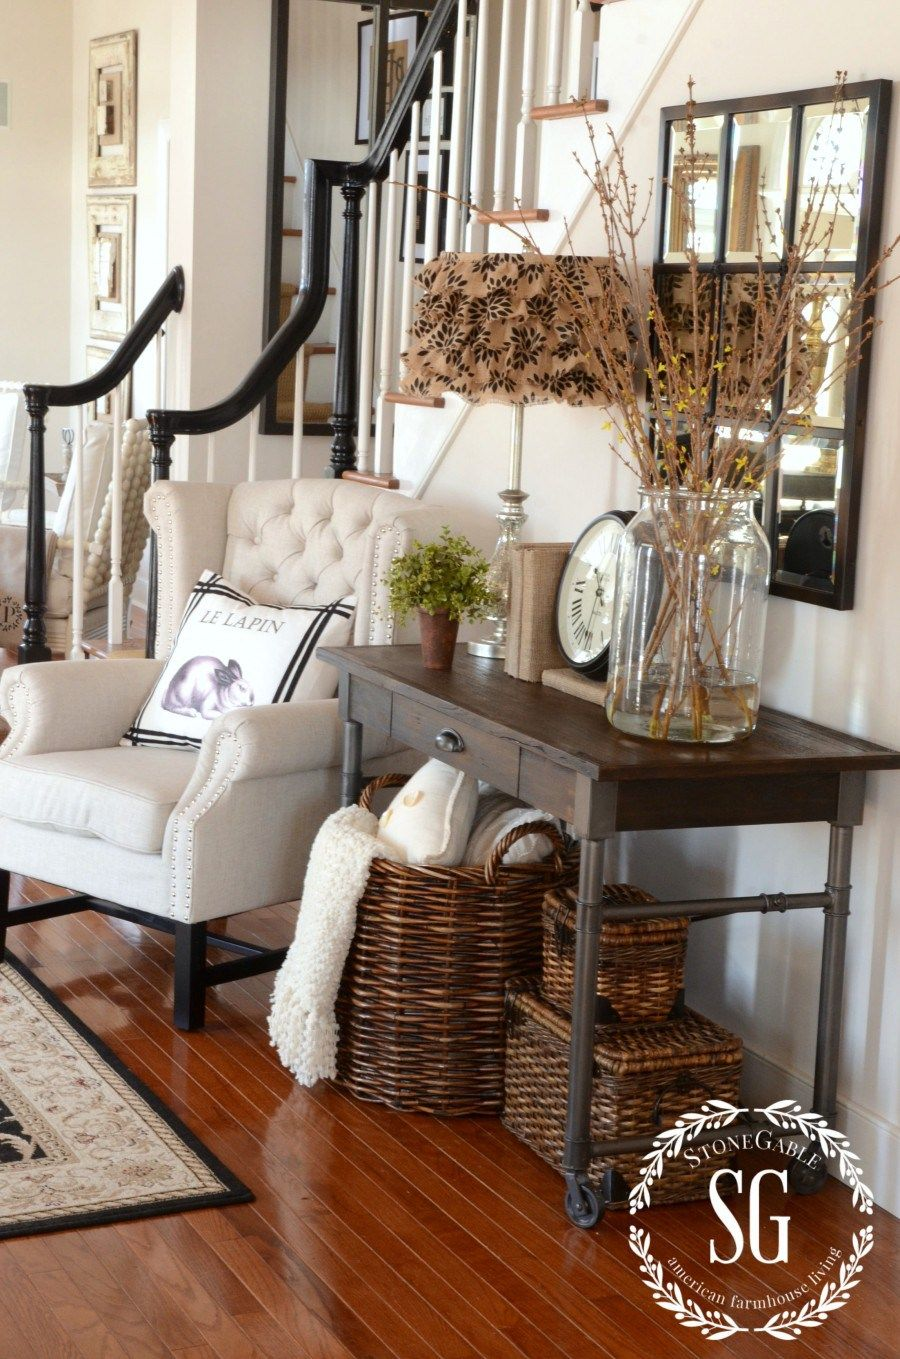 Home Foyer Decorating Ideas 23 Rustic Farmhouse Decor Ideas  Foyers Rustic Farmhouse Decor